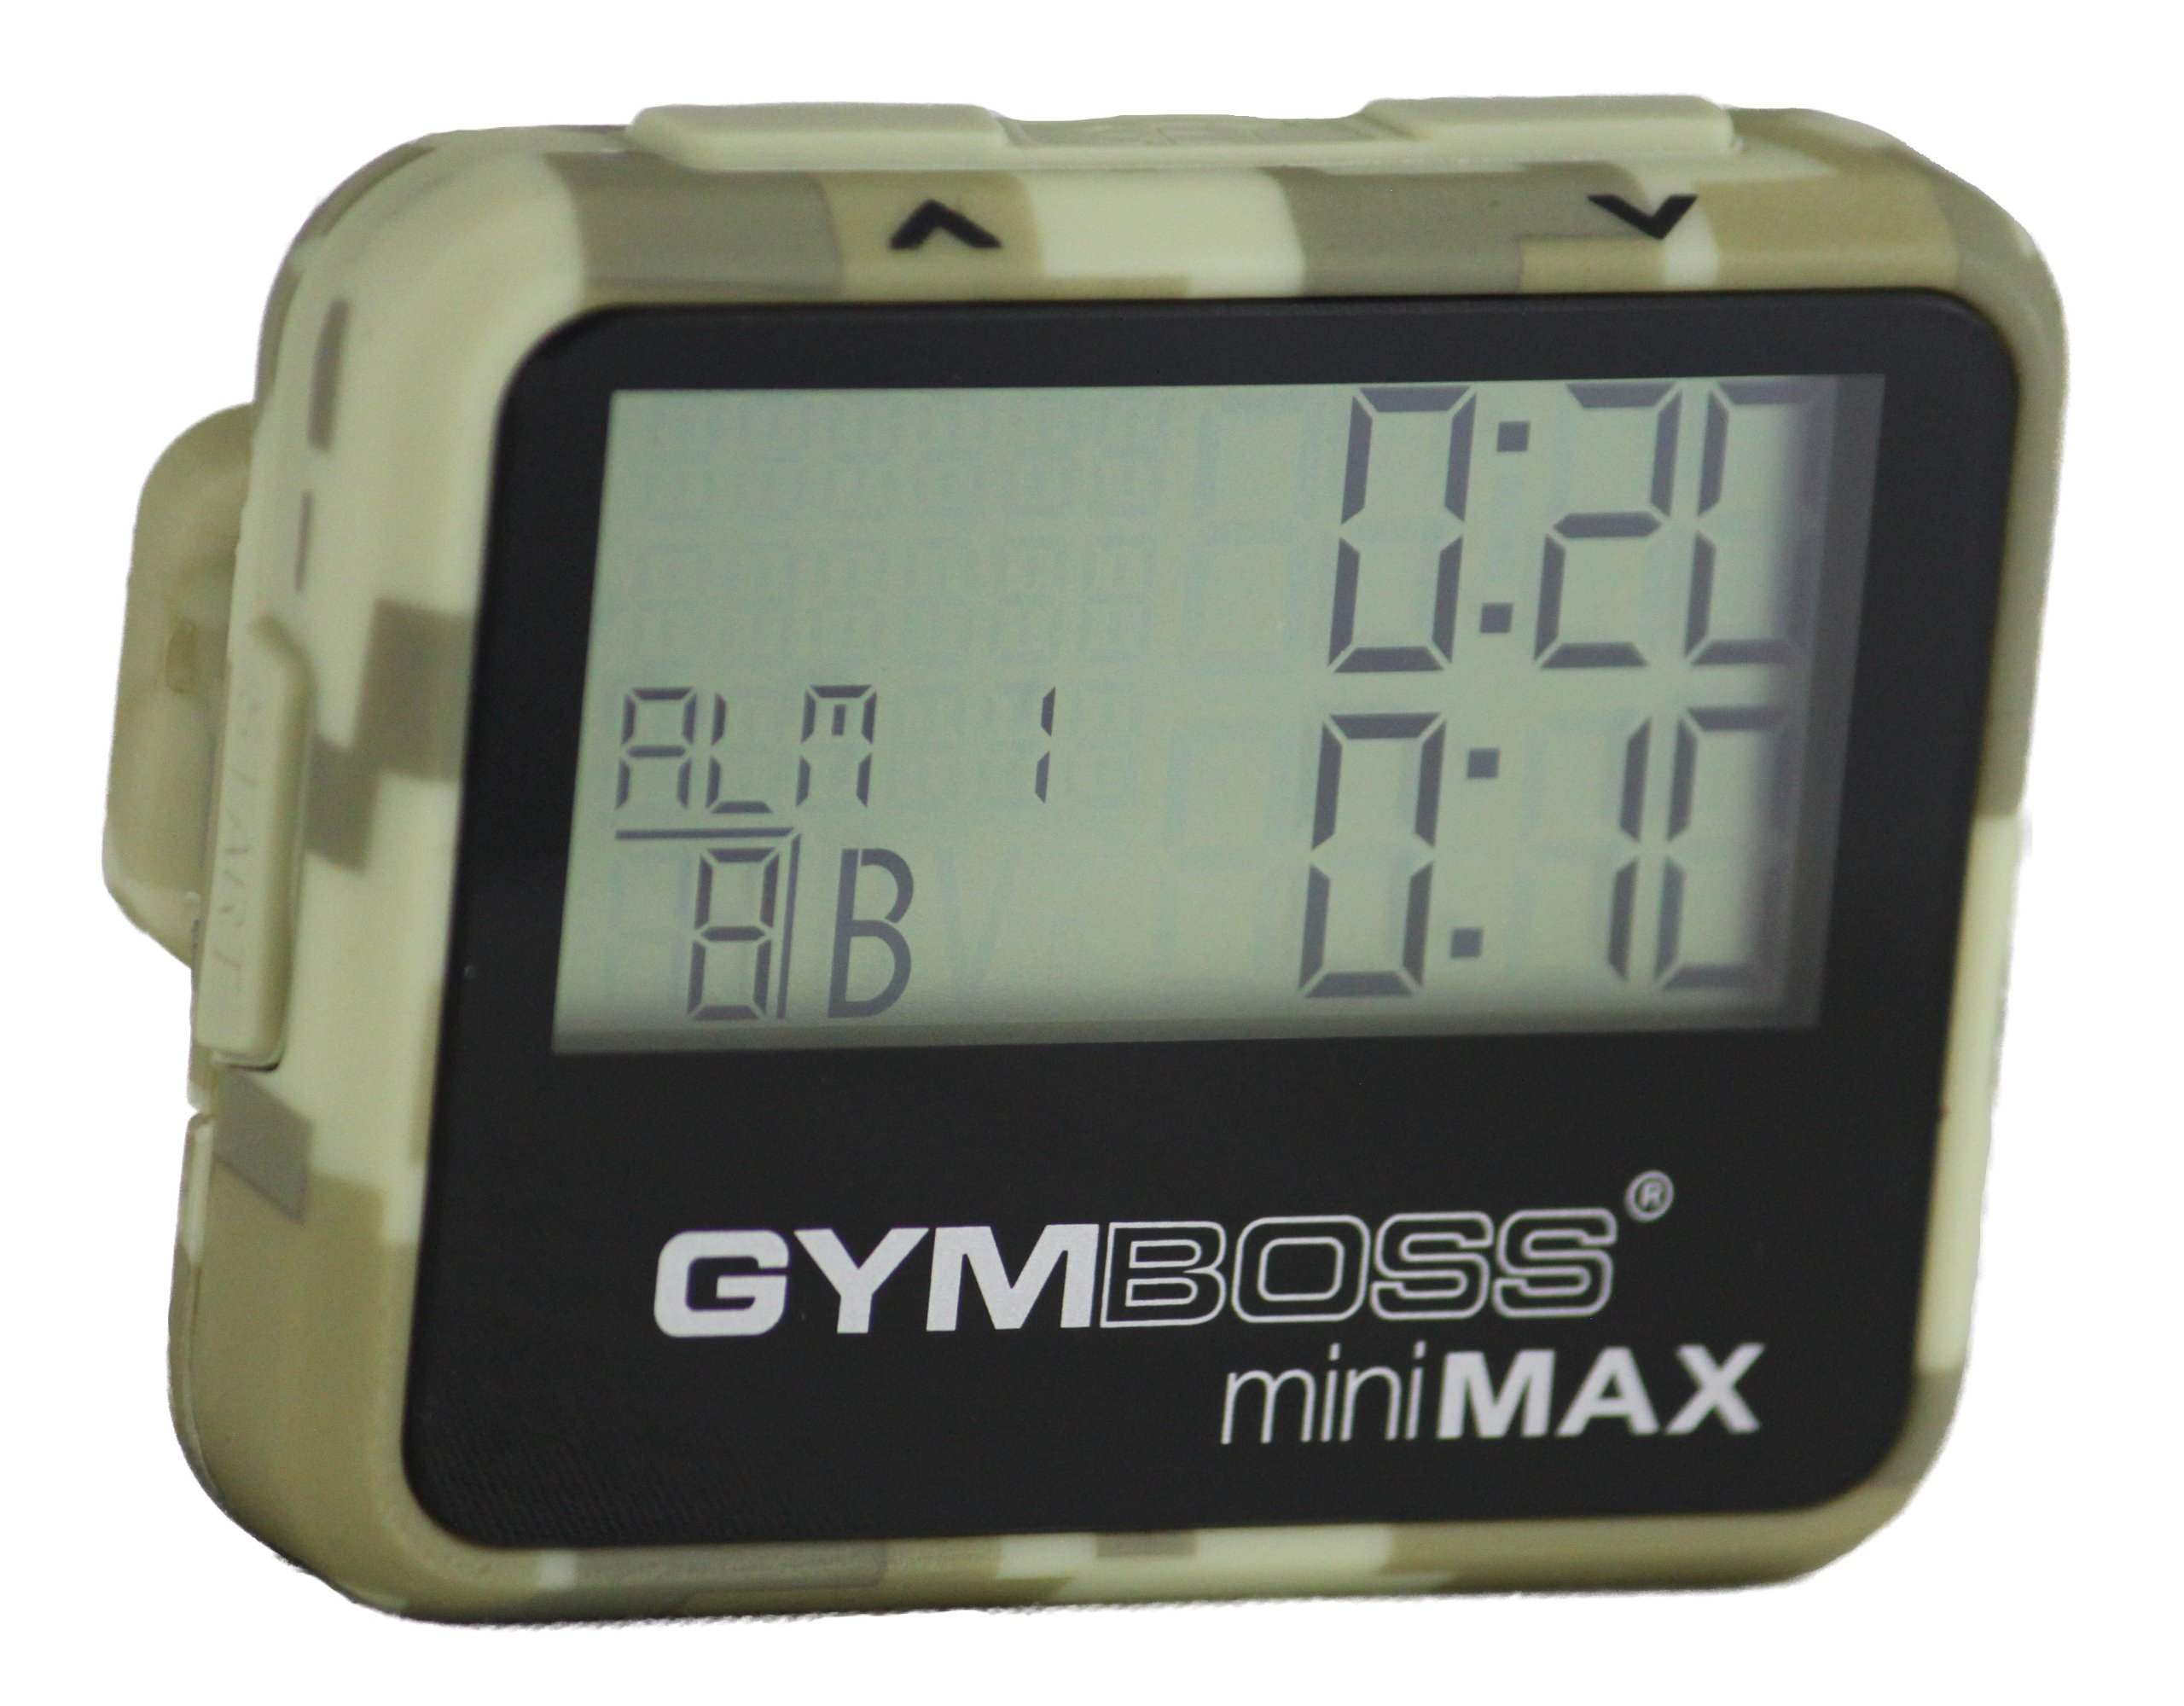 Gymboss miniMAX Interval Timer and Stopwatch - CAMOUFLAGE / TAN SOFTCOAT by Gymboss